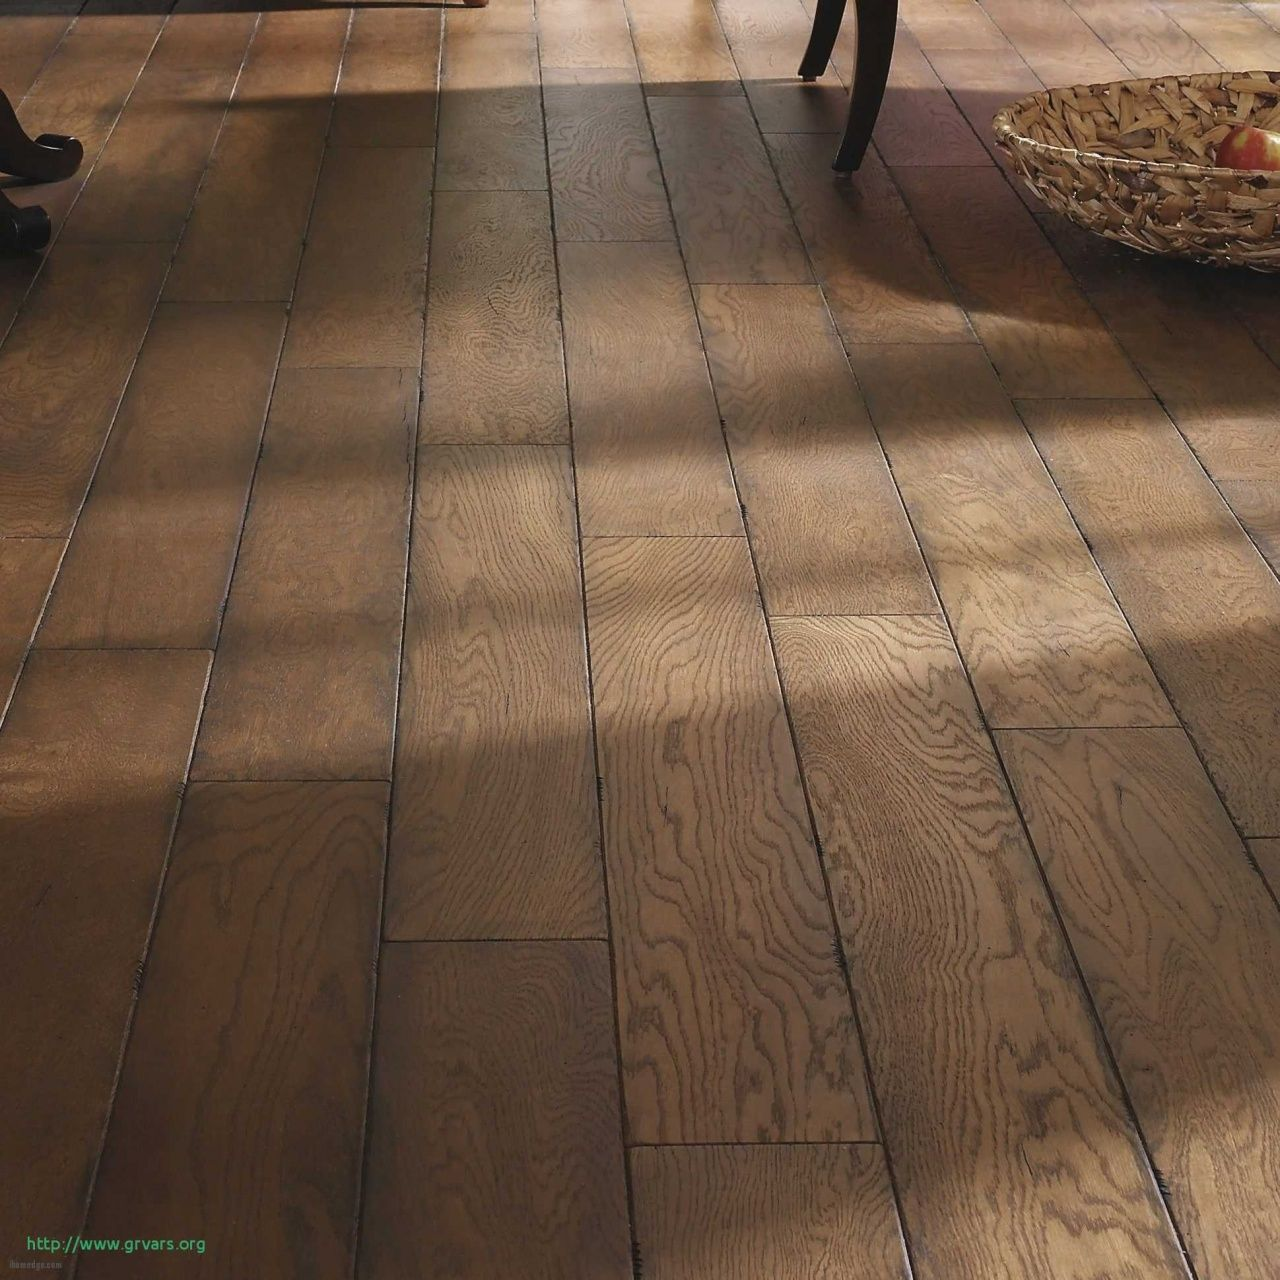 How Much Does It Cost to Install Vinyl Flooring in 2020